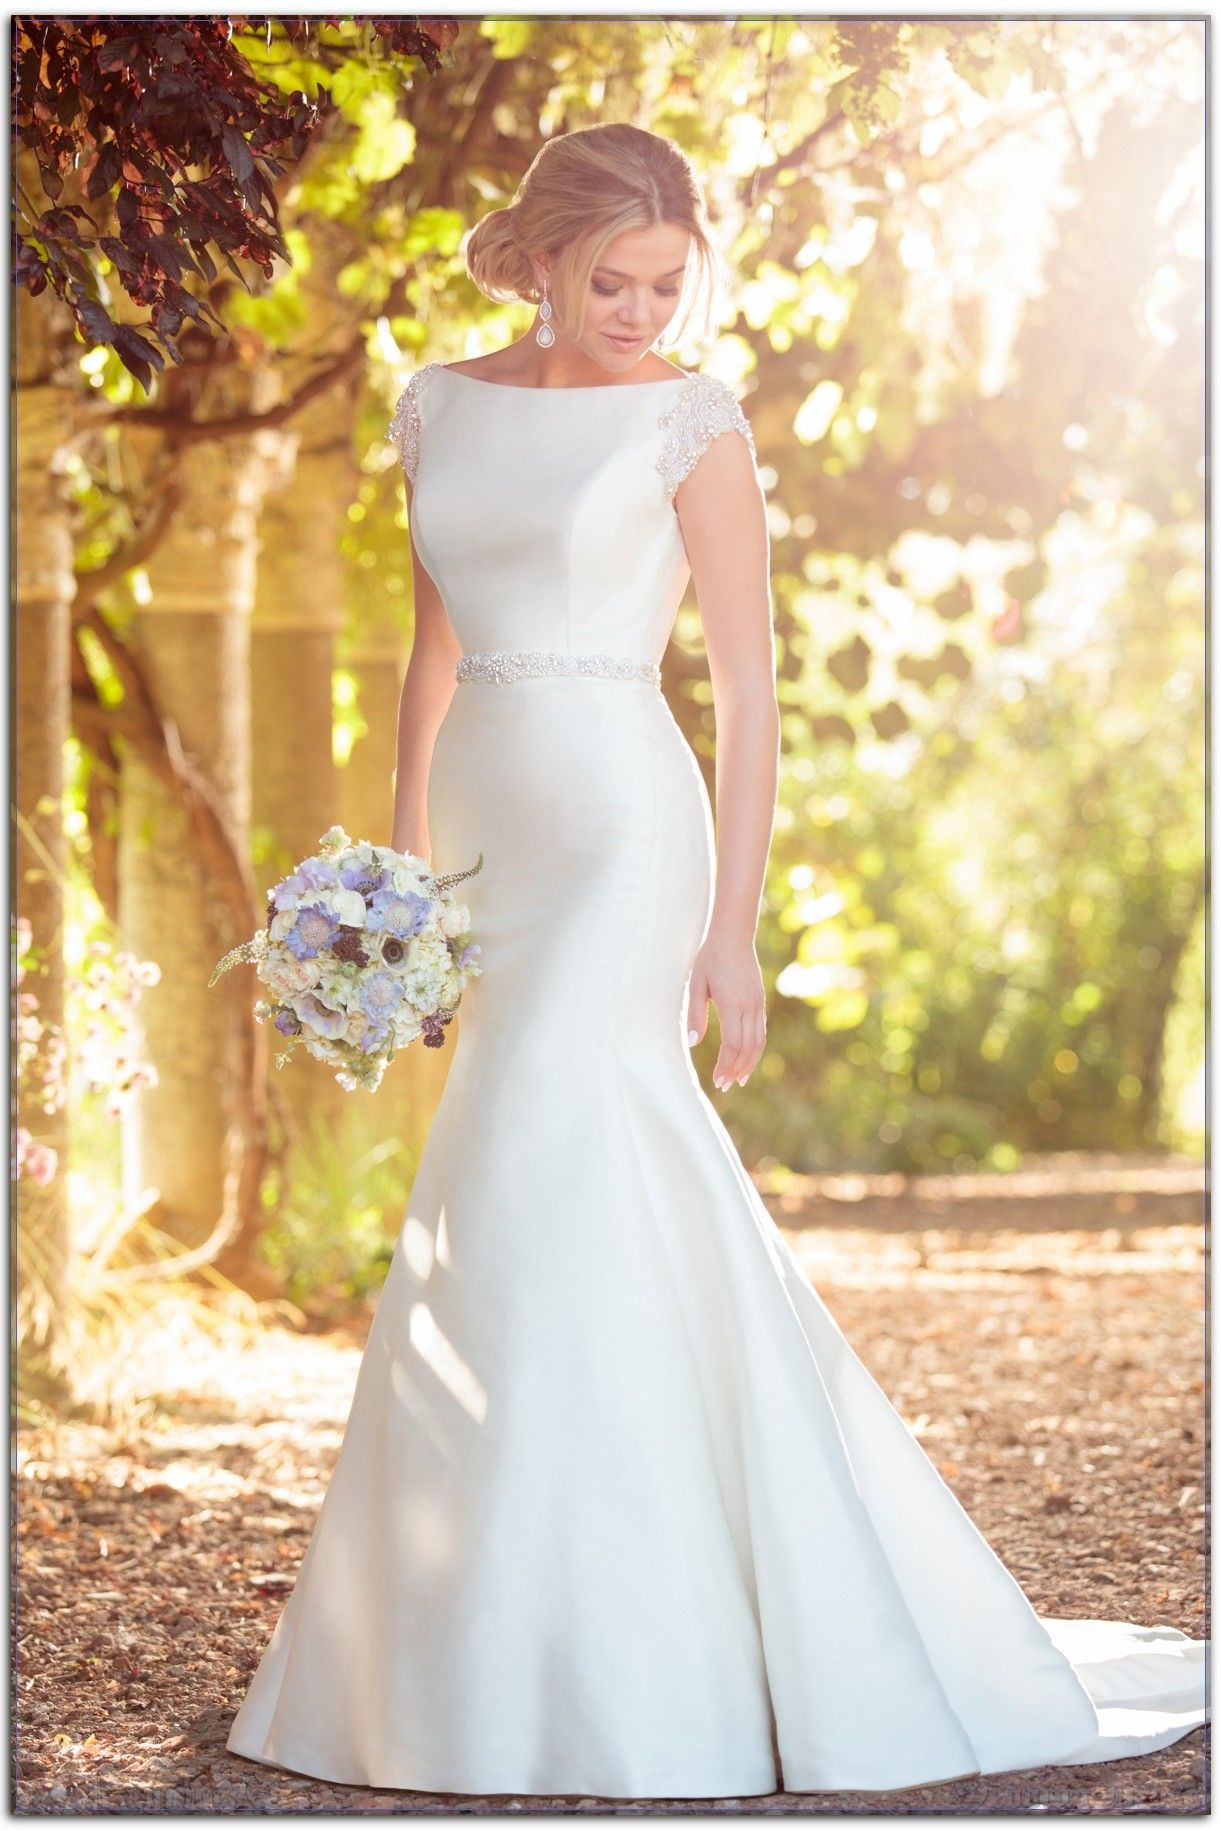 What Everyone Must Know About Weddings Dress